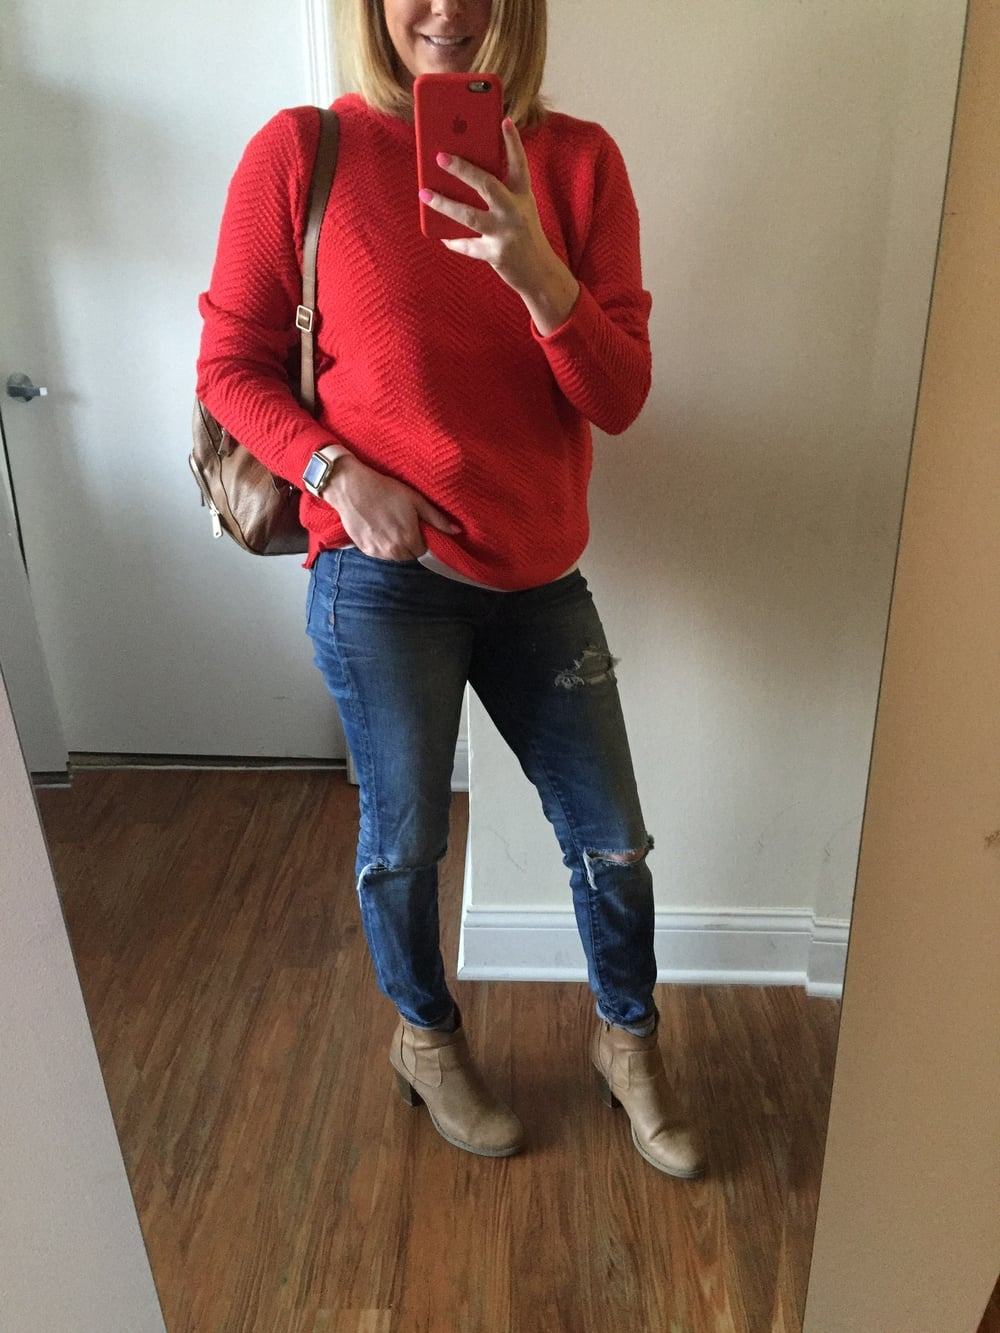 Sweater: Old Navy,  Women's Textured Chevron-Stitch Sweater ,   Jeans: Madewell,  High Riser Skinny , Booties: Old Navy, Backpack: Fossil, Watch: Apple,  38mm Gold Aluminum Case  (with Antique White Sport Band)